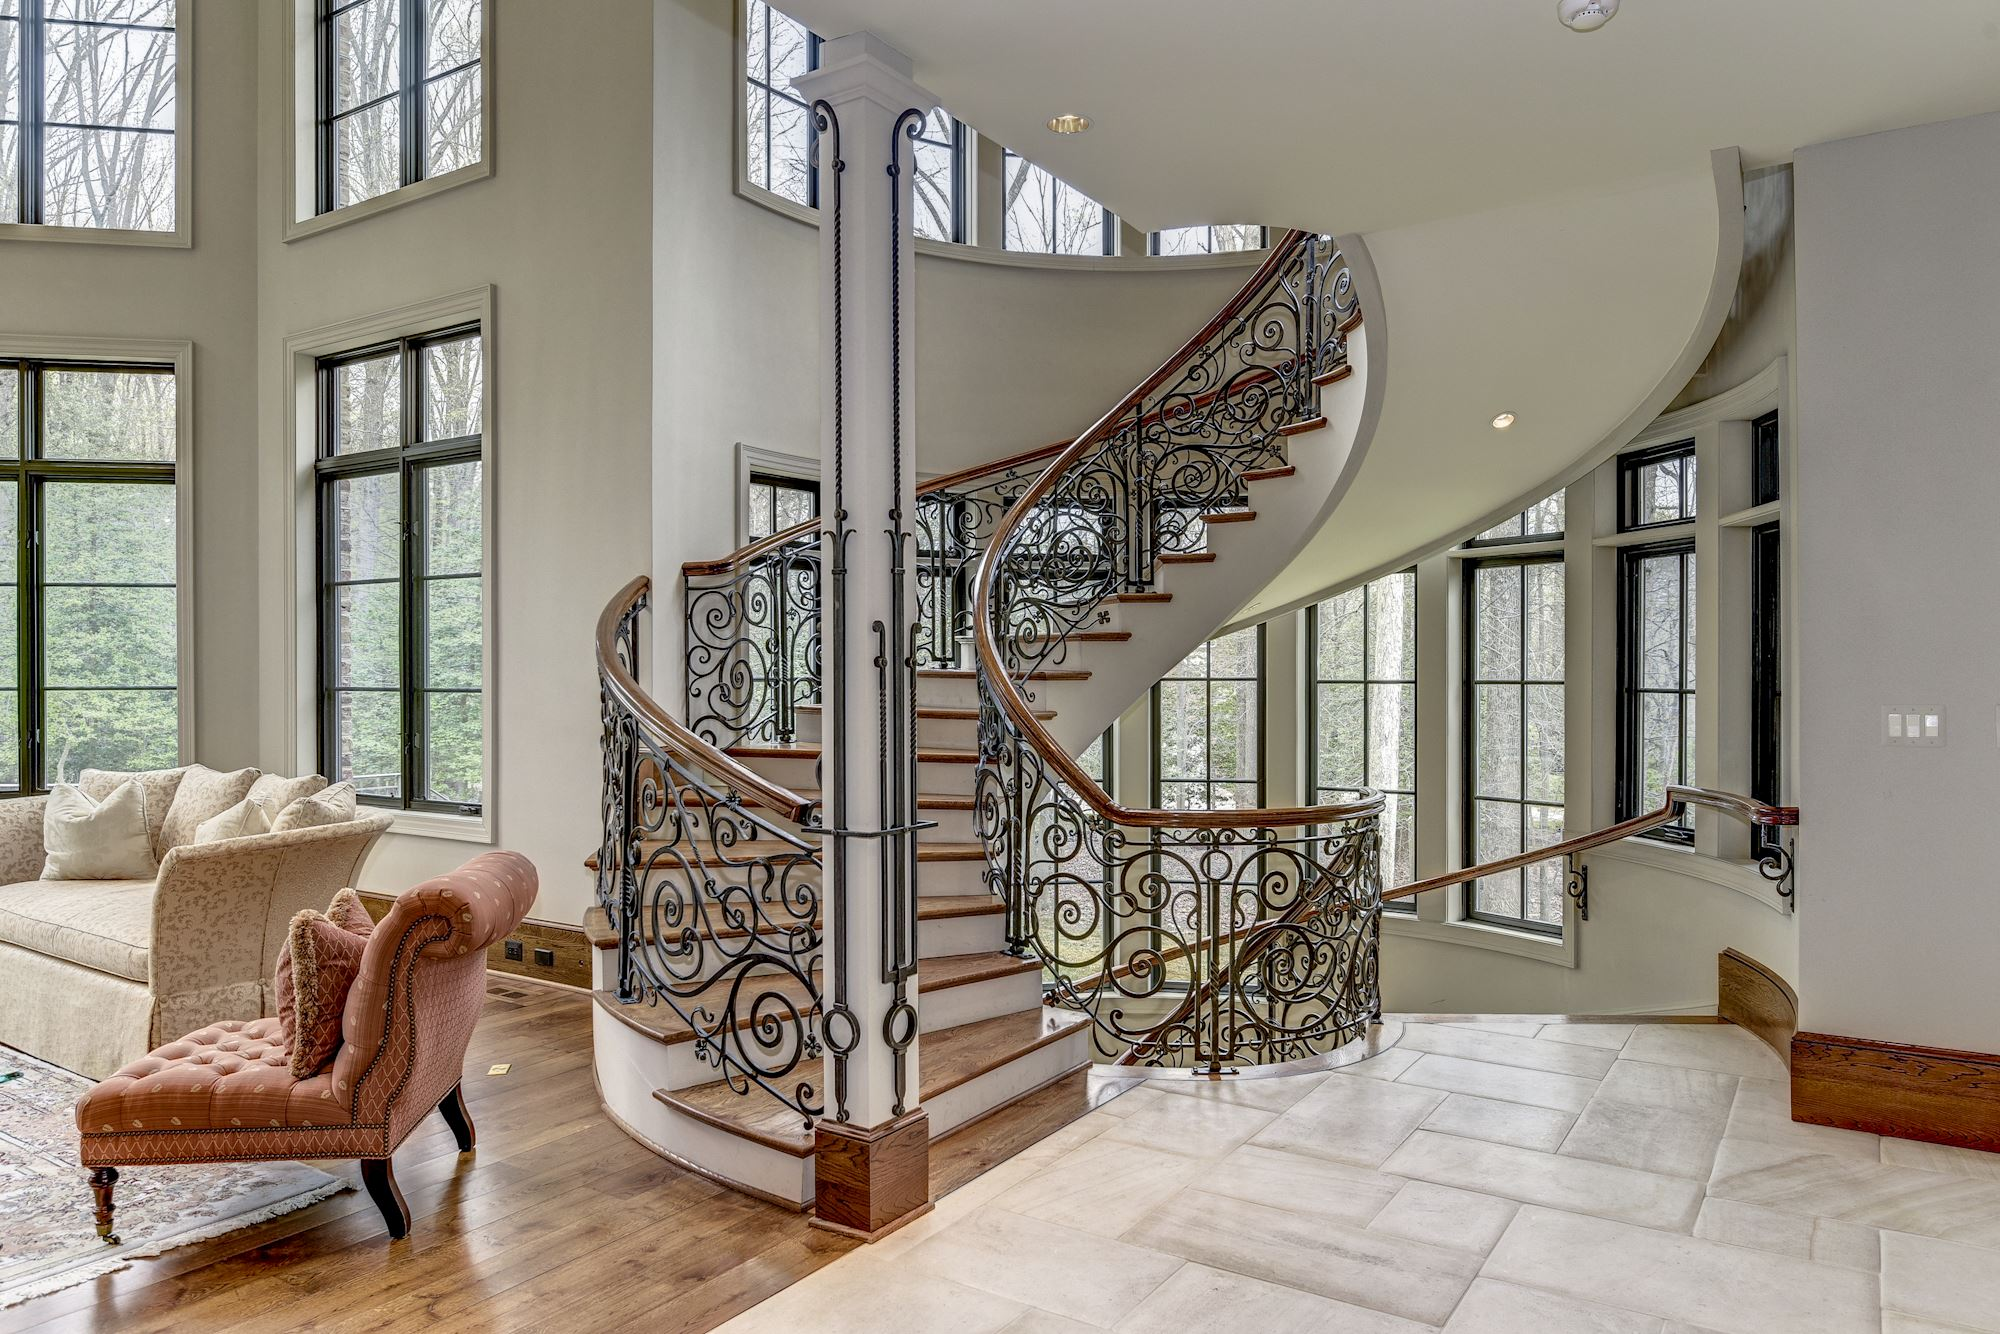 If you've ever had dreams of living in a European chateau, overlooking a 10-acre bird sanctuary or living in the neighborhood that houses the PGA tour, we have news for you. A 15,000-square-foot 6-bedroom/9-bath home in Potomac's exclusive Avenel neighborhood has just come on the market. (Image: Courtesy HomeVisit)